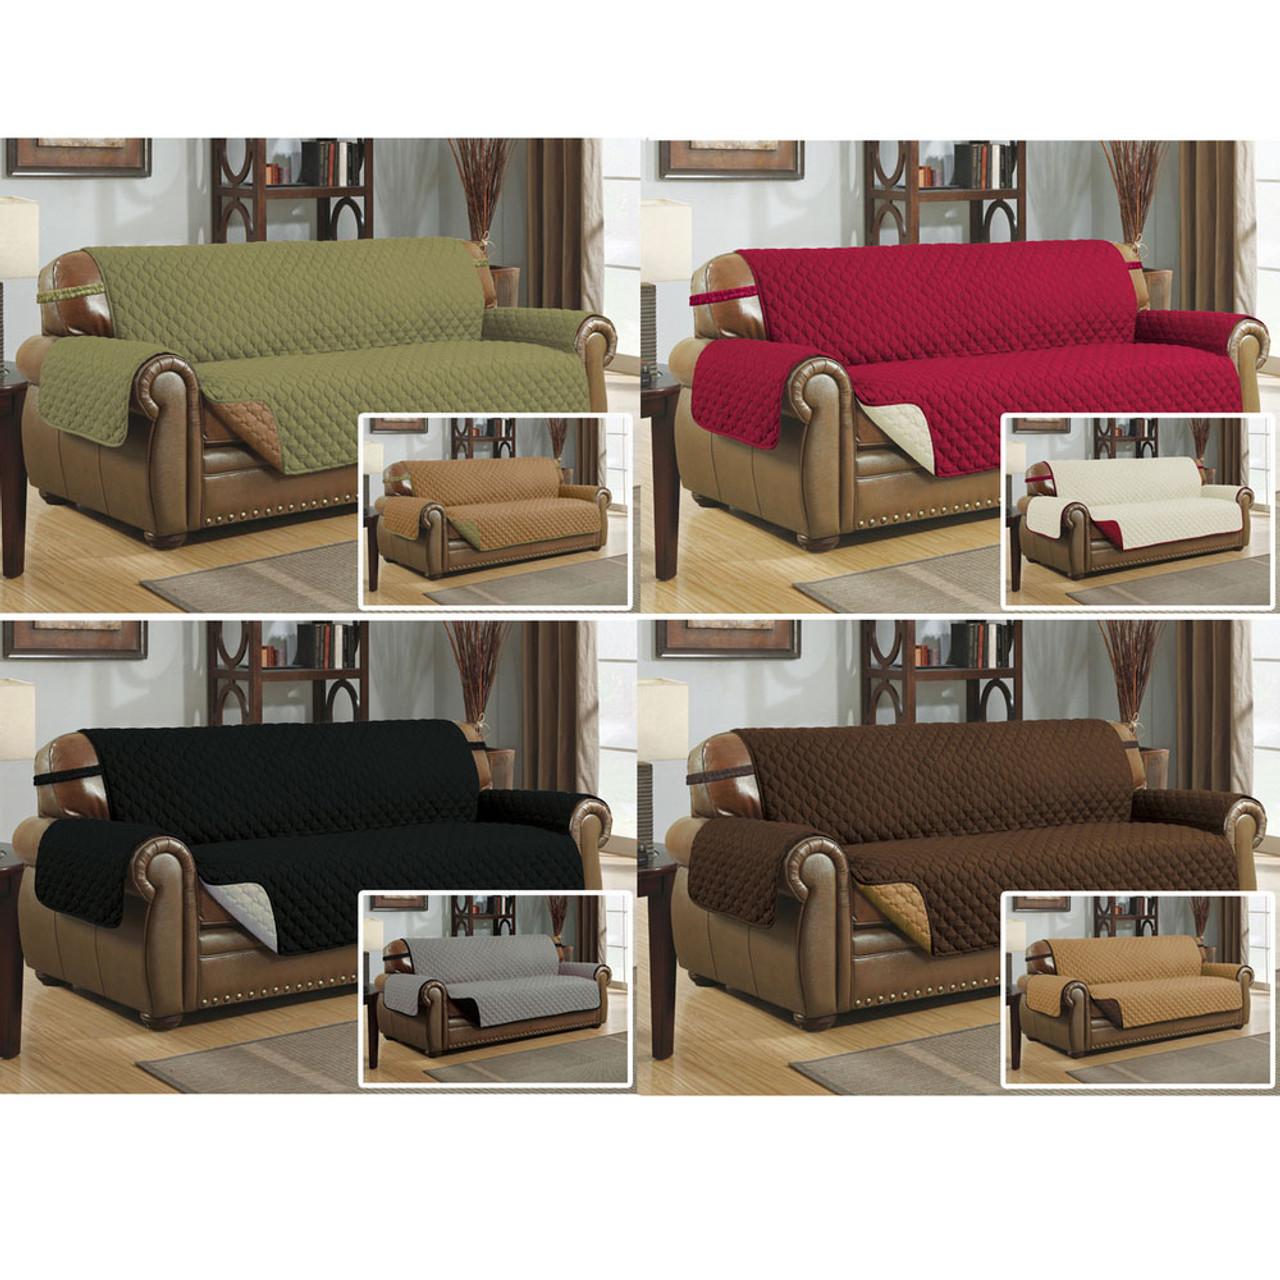 Furniture Protector Cover Quilted Microfiber Pet Dog Couch Sofa